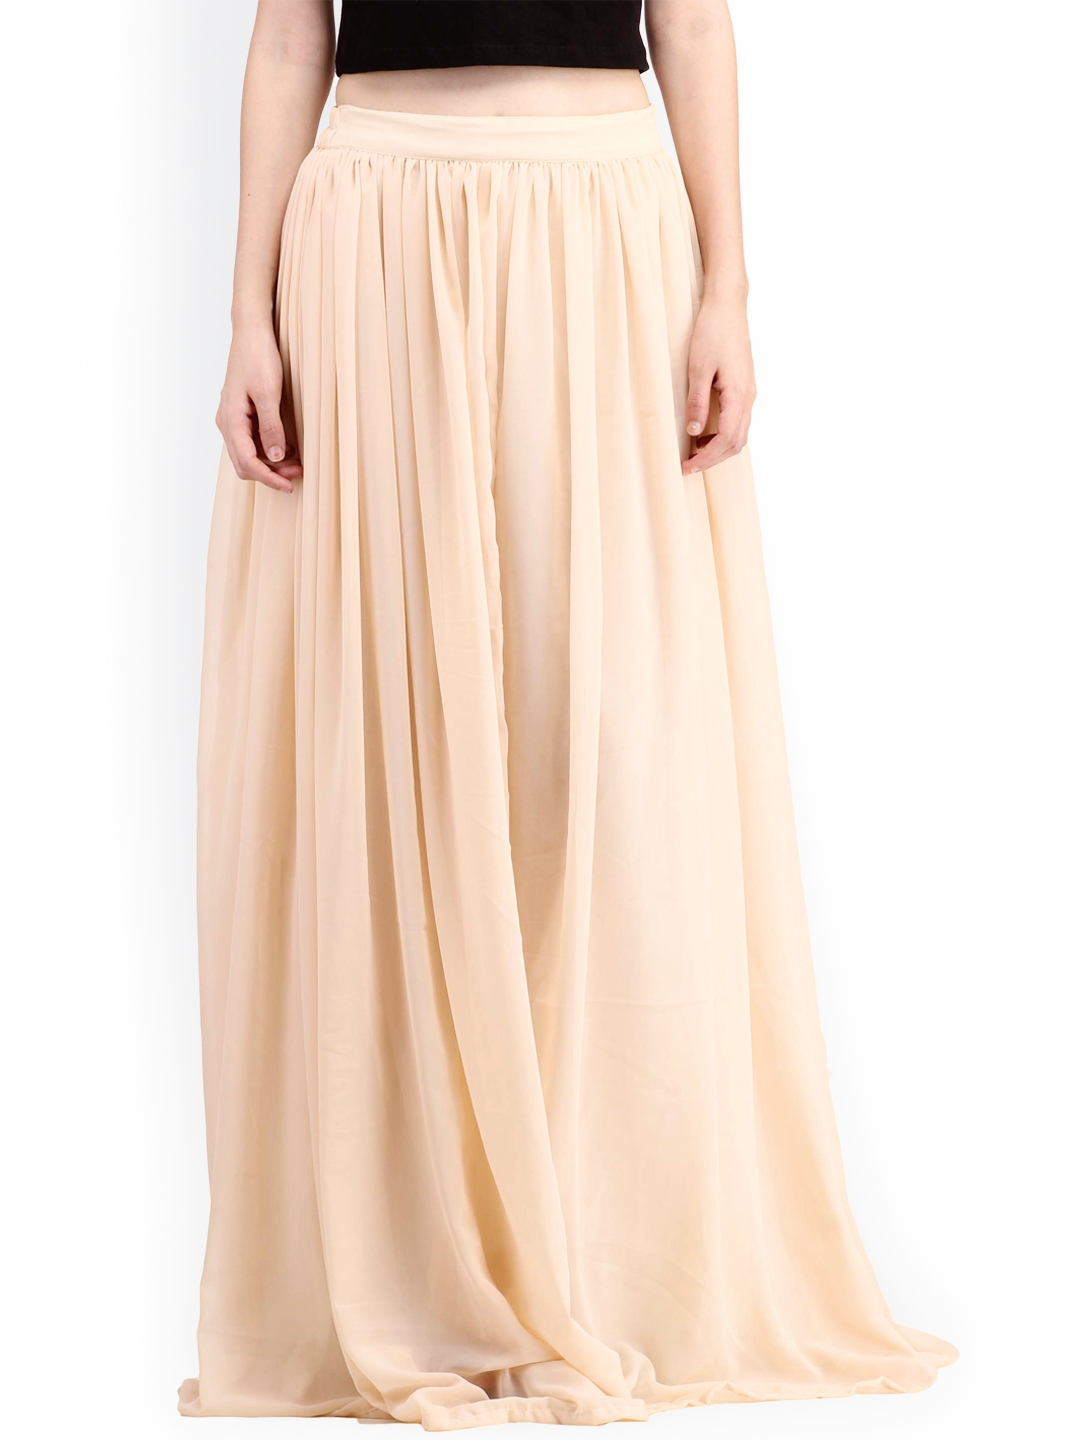 Forget about midi skirts!Maxi is the length of the season. No matter the occasion or weather, there's a maxi skirt that can fit the bill. The skirt is a wardrobe staple .